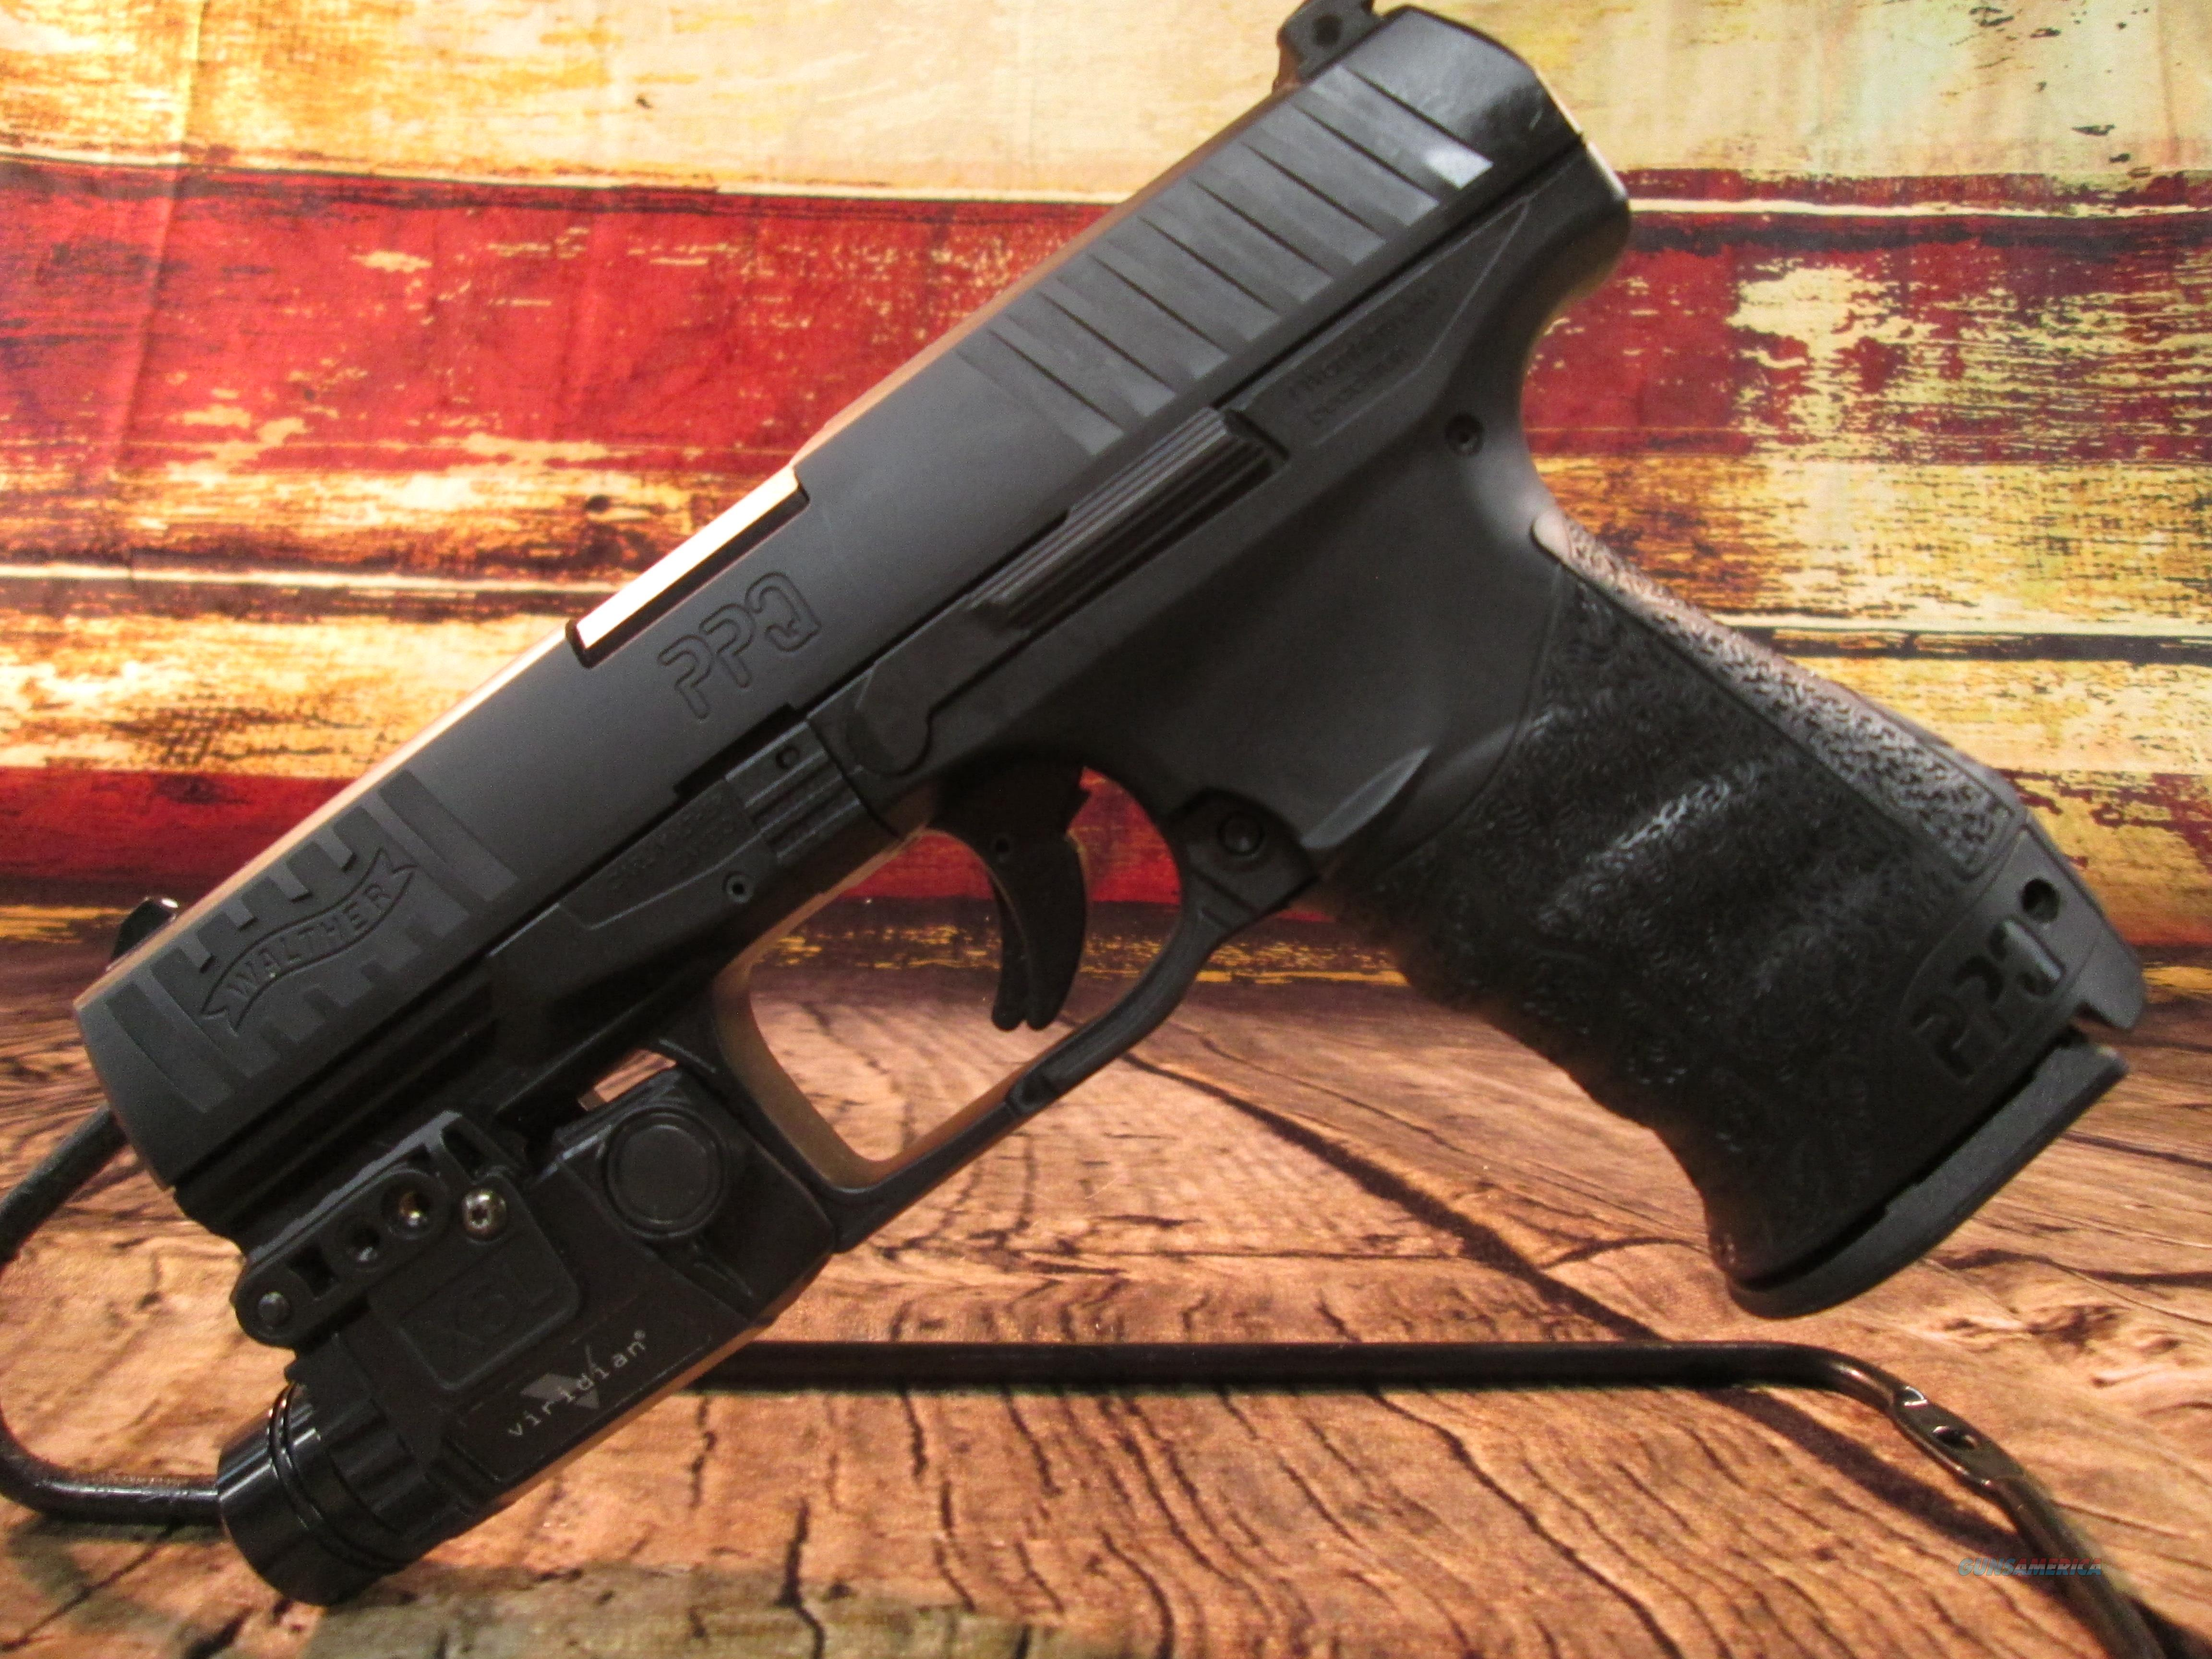 WALTHER PPQ WITH VIRIDIAN LASER/LIGHT & HOLSTER USED (62657)